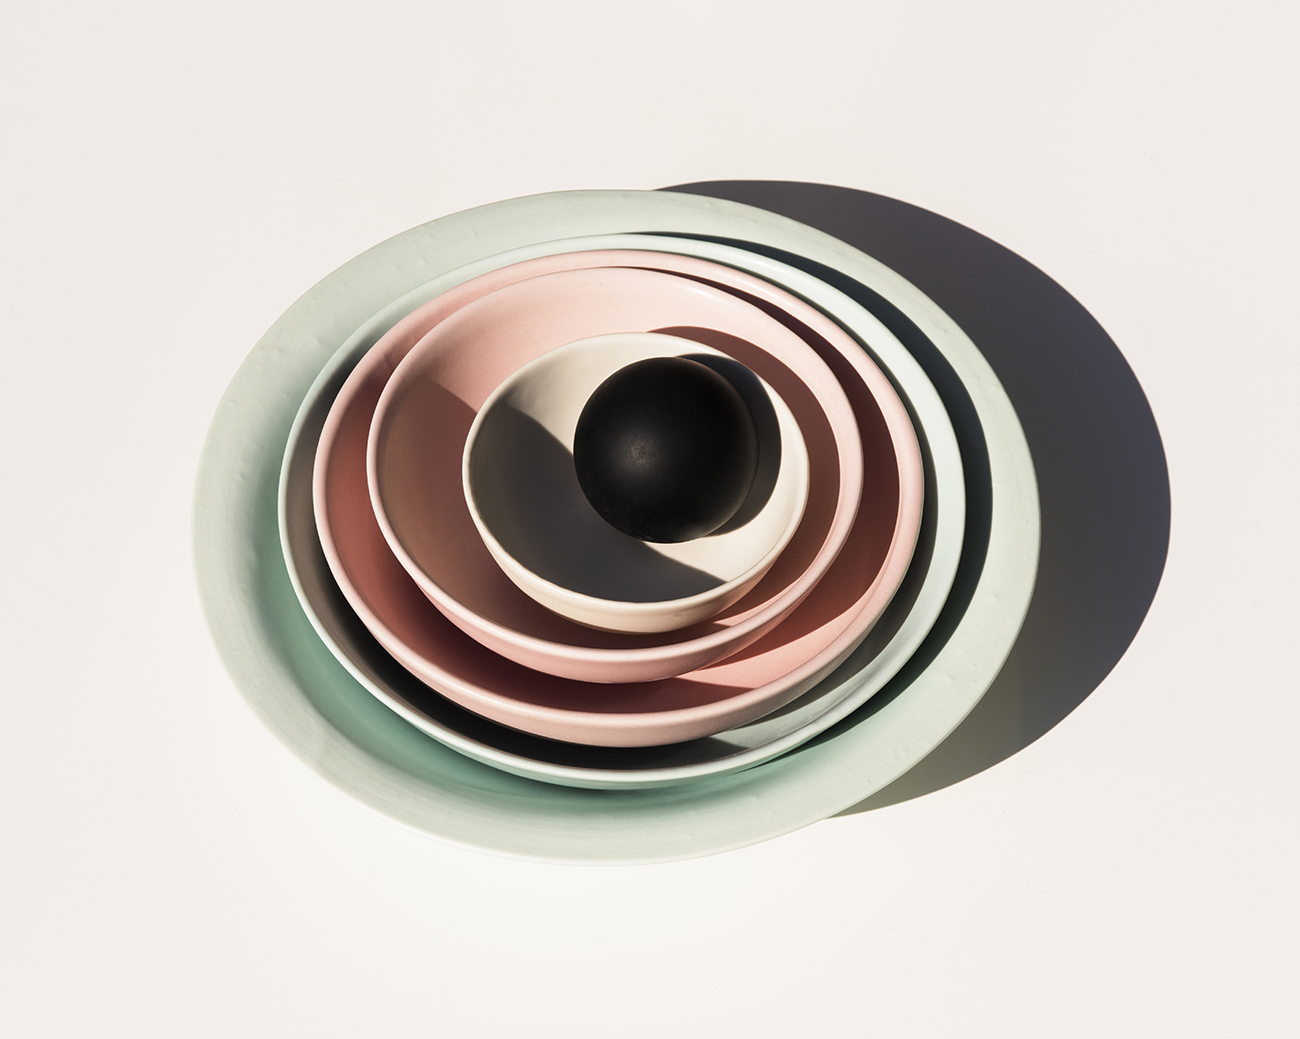 The Candy-Colored Ceramics Collection We're Coveting